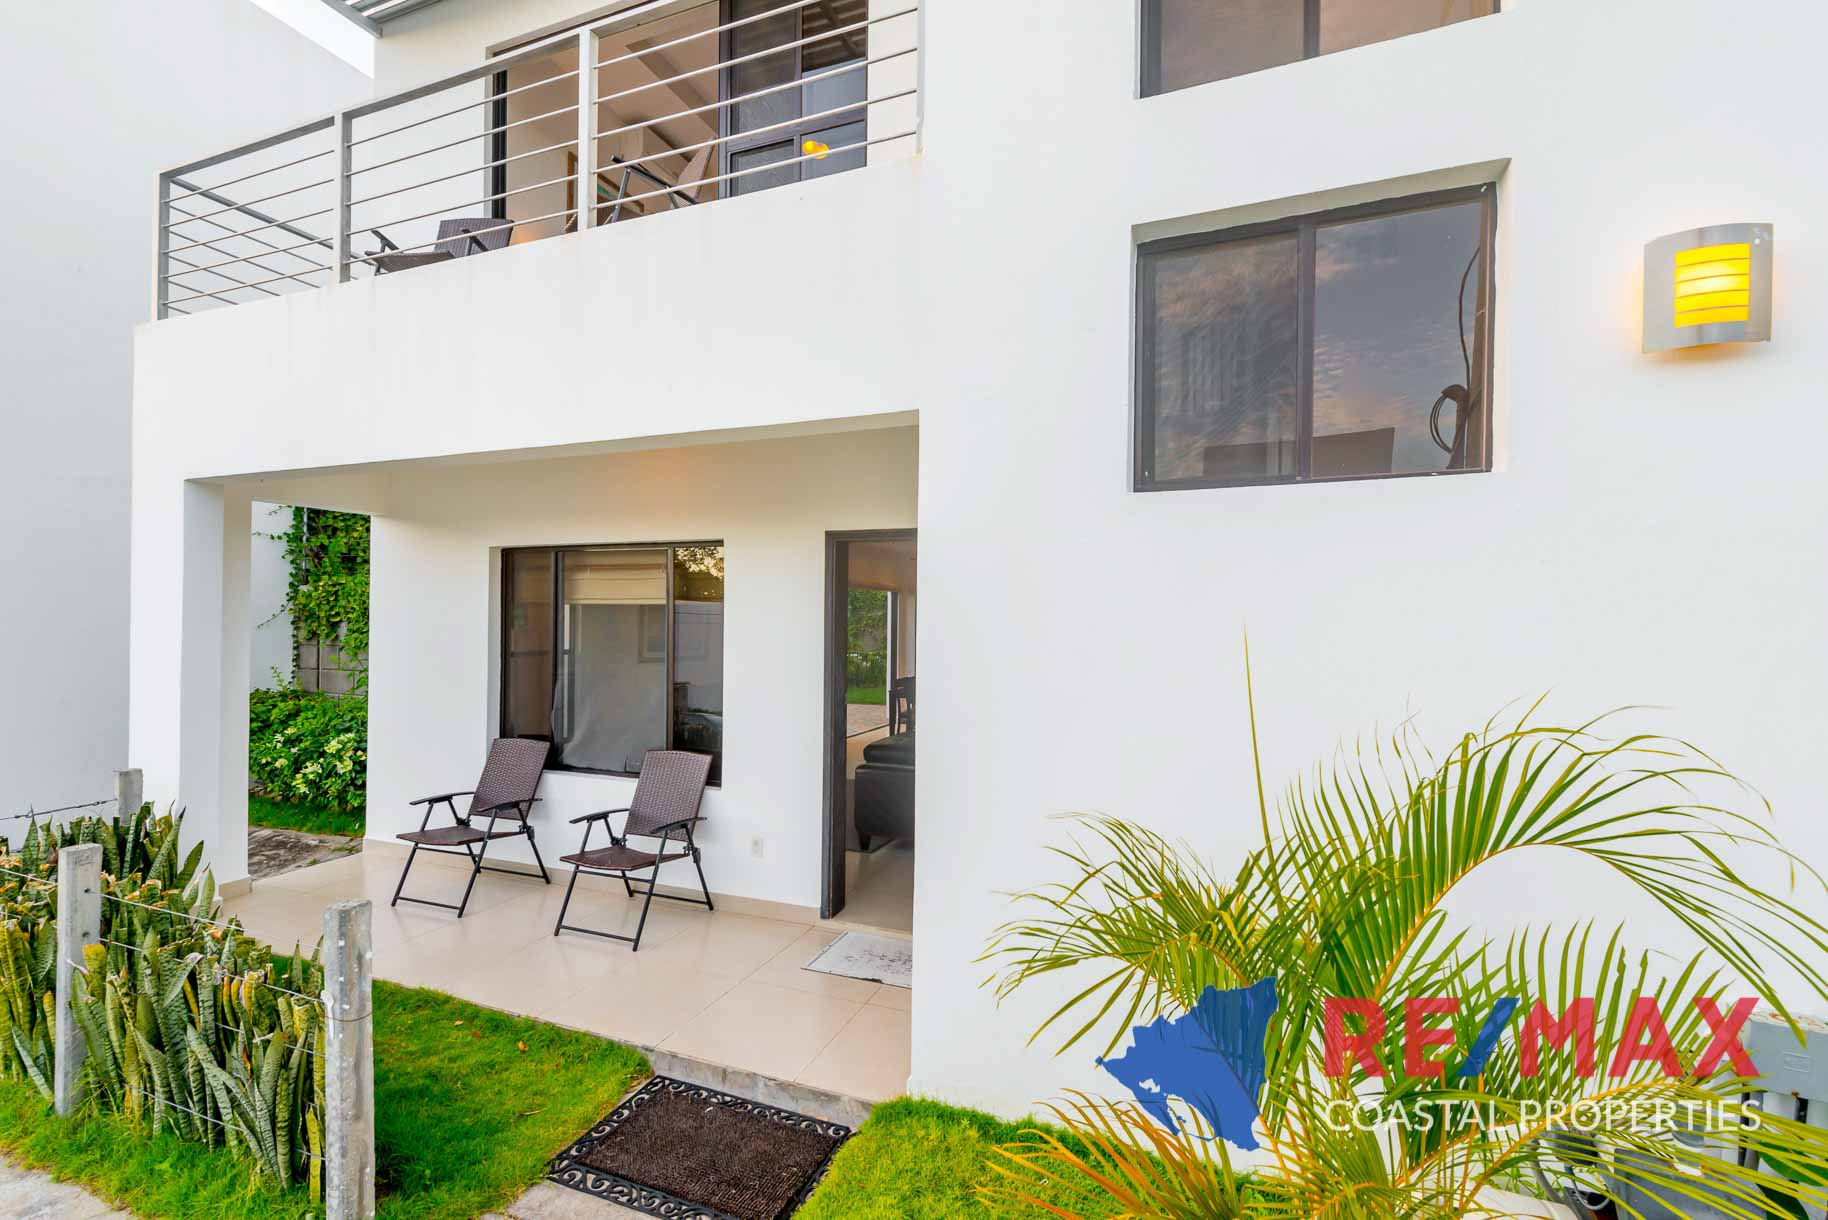 http://property-nicaragua.com/pedrodev/wp-content/uploads/2019/09/Townhomes-Miramar-13-REMAX-Coastal-Properties-24.jpg